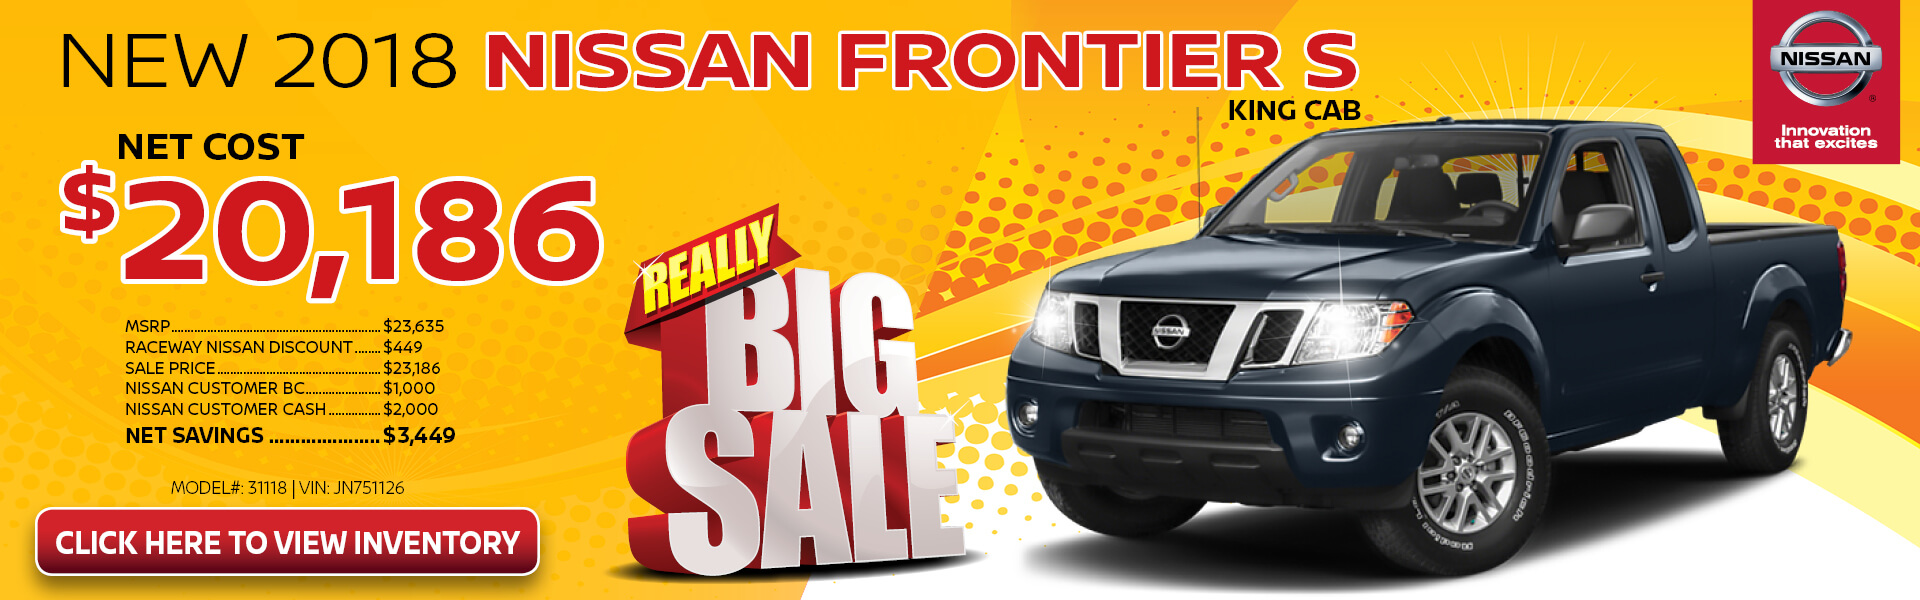 Nissan Frontier $20,186 Purchase